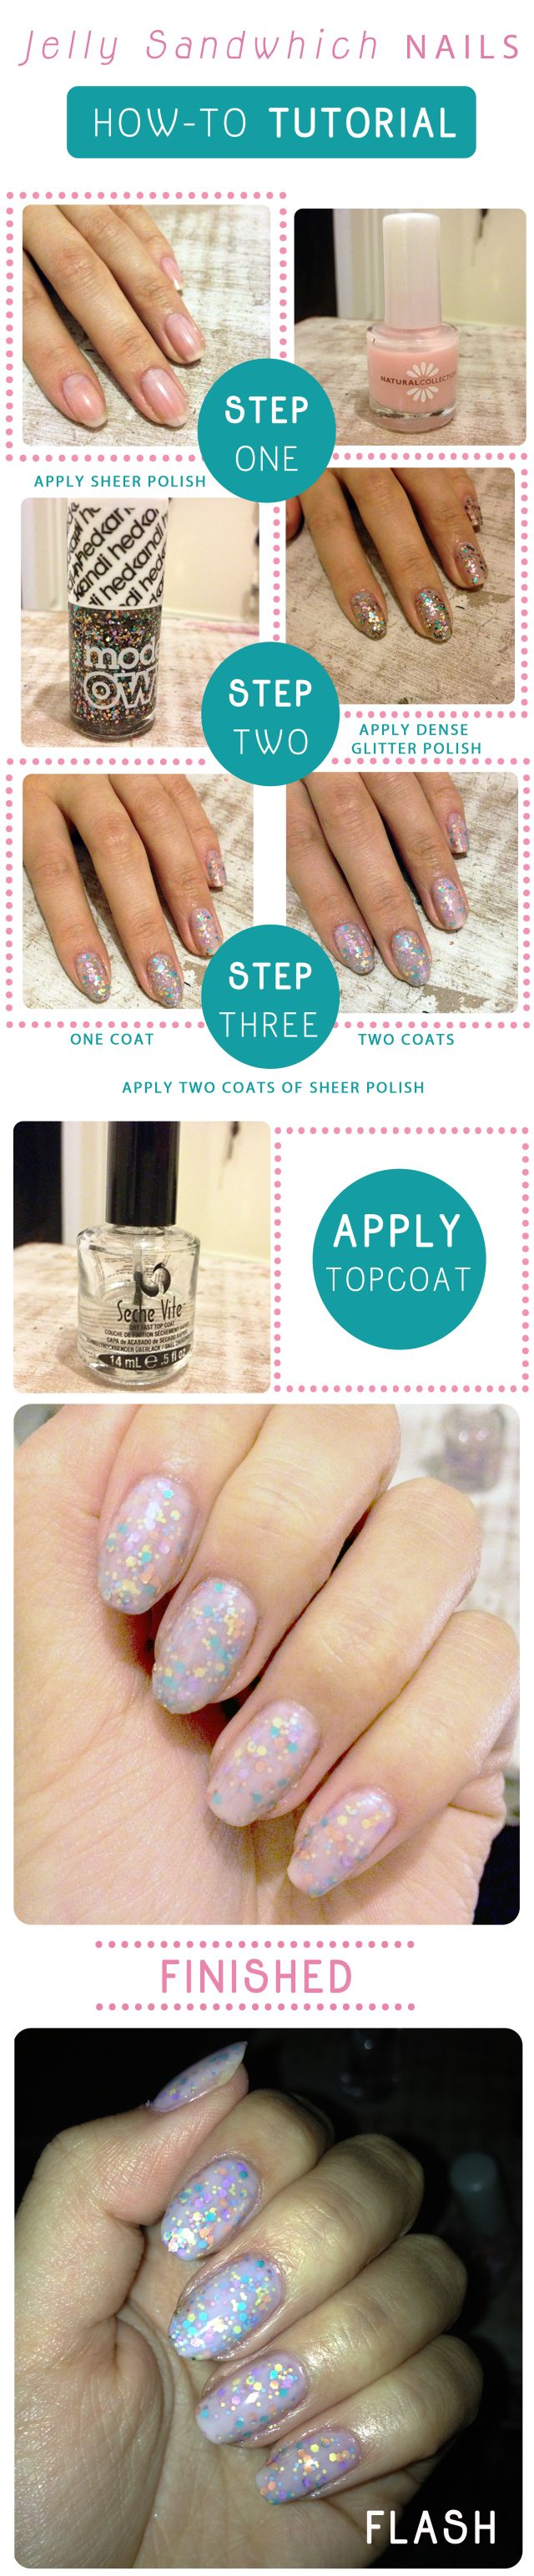 Jelly Sandwhich Nails Tutorial